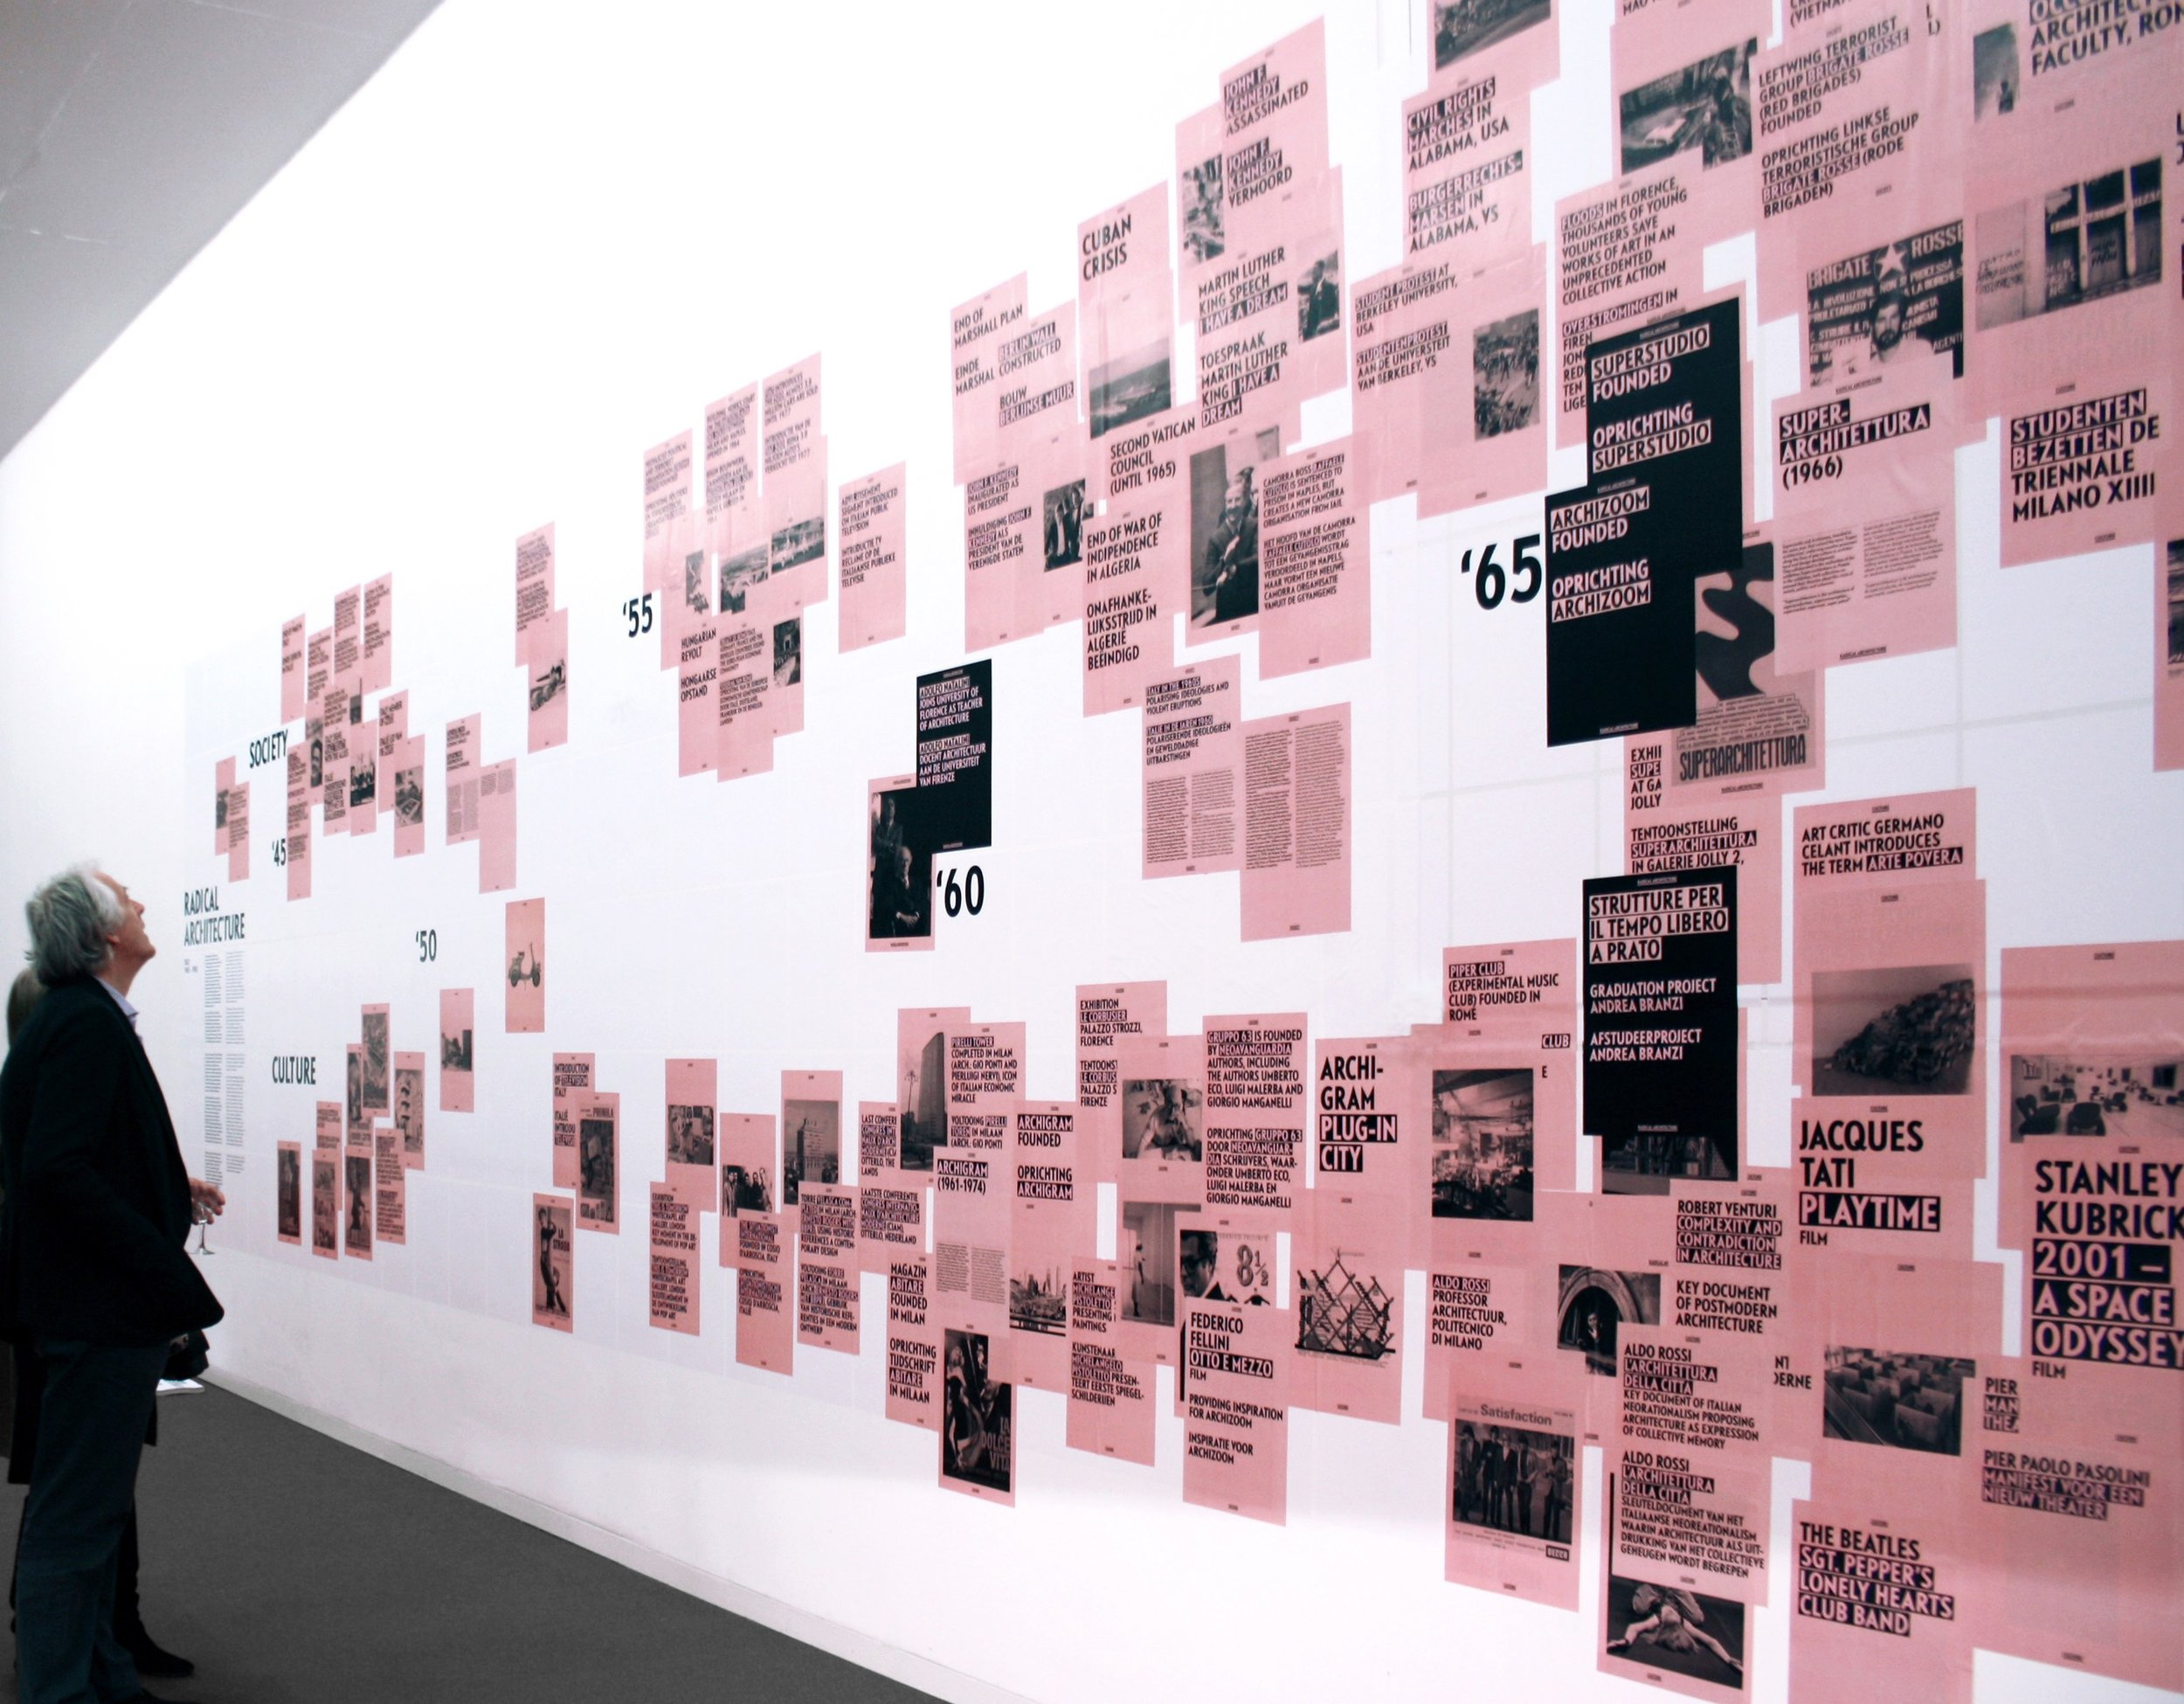 Exhibition Radical Architecture De Singel, Antwerpen  This small  exhibition , examines different strands of architectural thought and forms of activism that emerged in Italy in the 1960s and 1970s. We looked at the historical and political backgrounds of Radical Architecture and at the projects, manifestoes and happenings through which the ideas on architecture and society were communicated.  This exhibition is a collaboration of the Flemish Architecture Institute (VAi), the research group Interiors, Buildings and Cities at the Faculty of Architecture of Delft University of Technology (TU Delft), The Netherlands and deSingel International Arts Campus.Graphic design by Team Thursday.